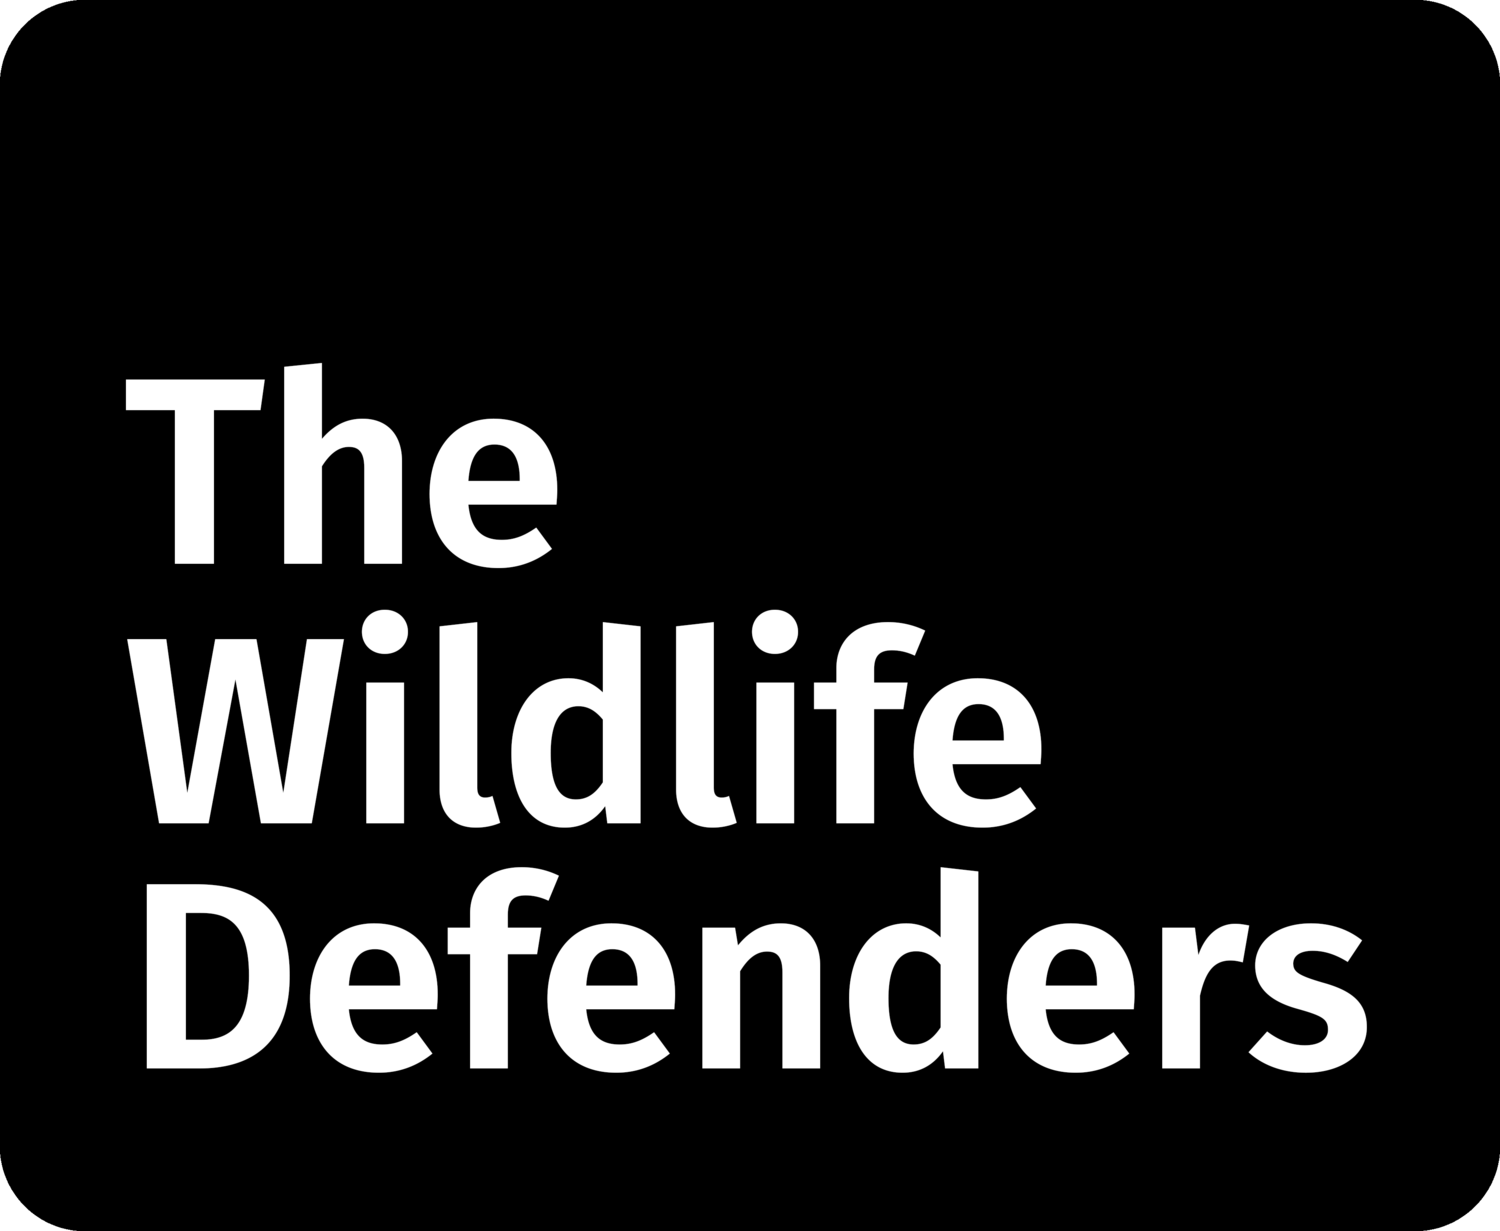 The Wildlife Defenders